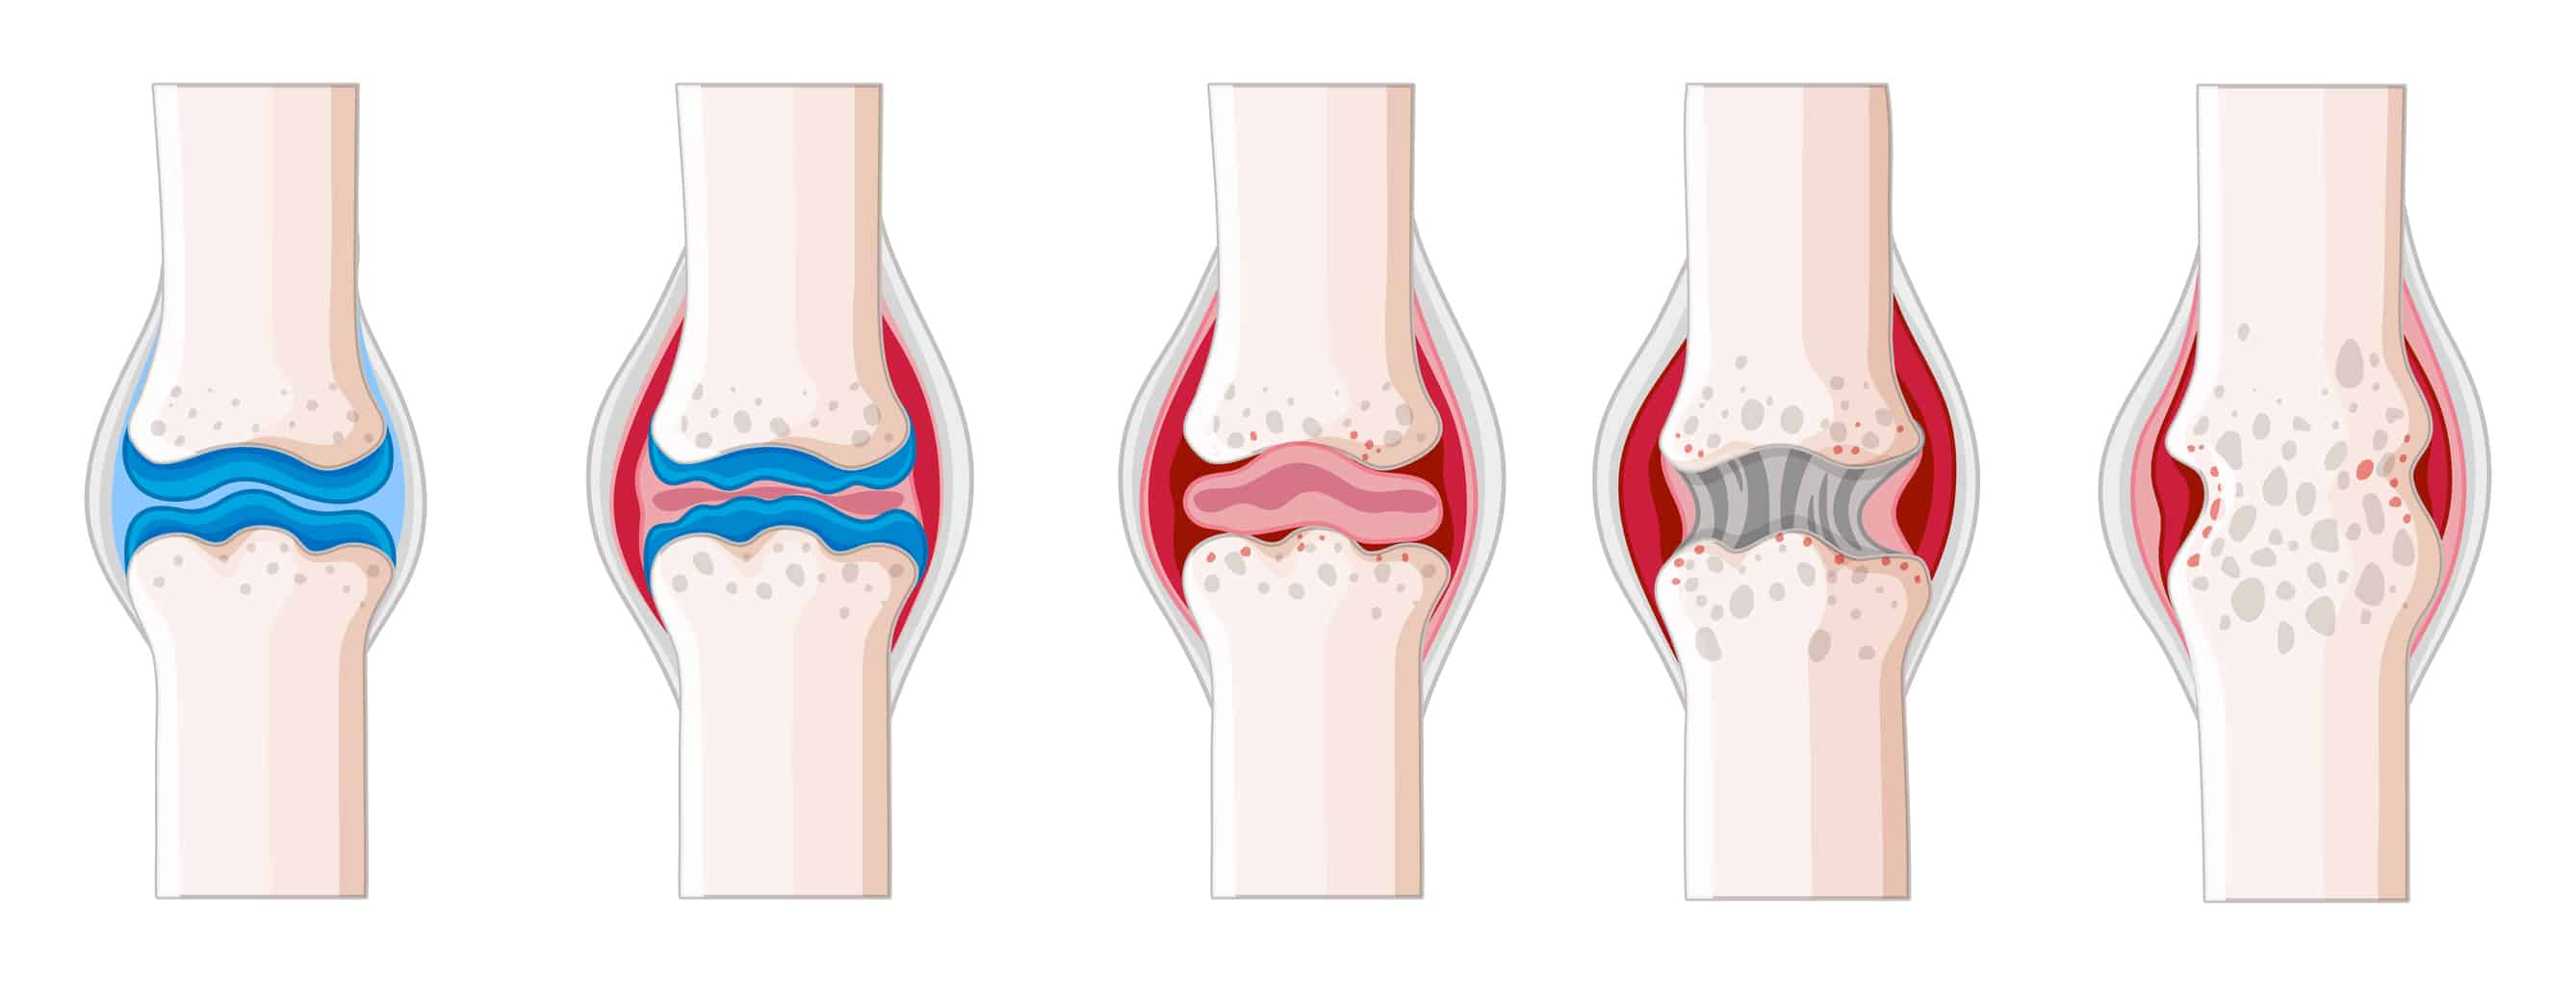 Arthritis in human body illustration